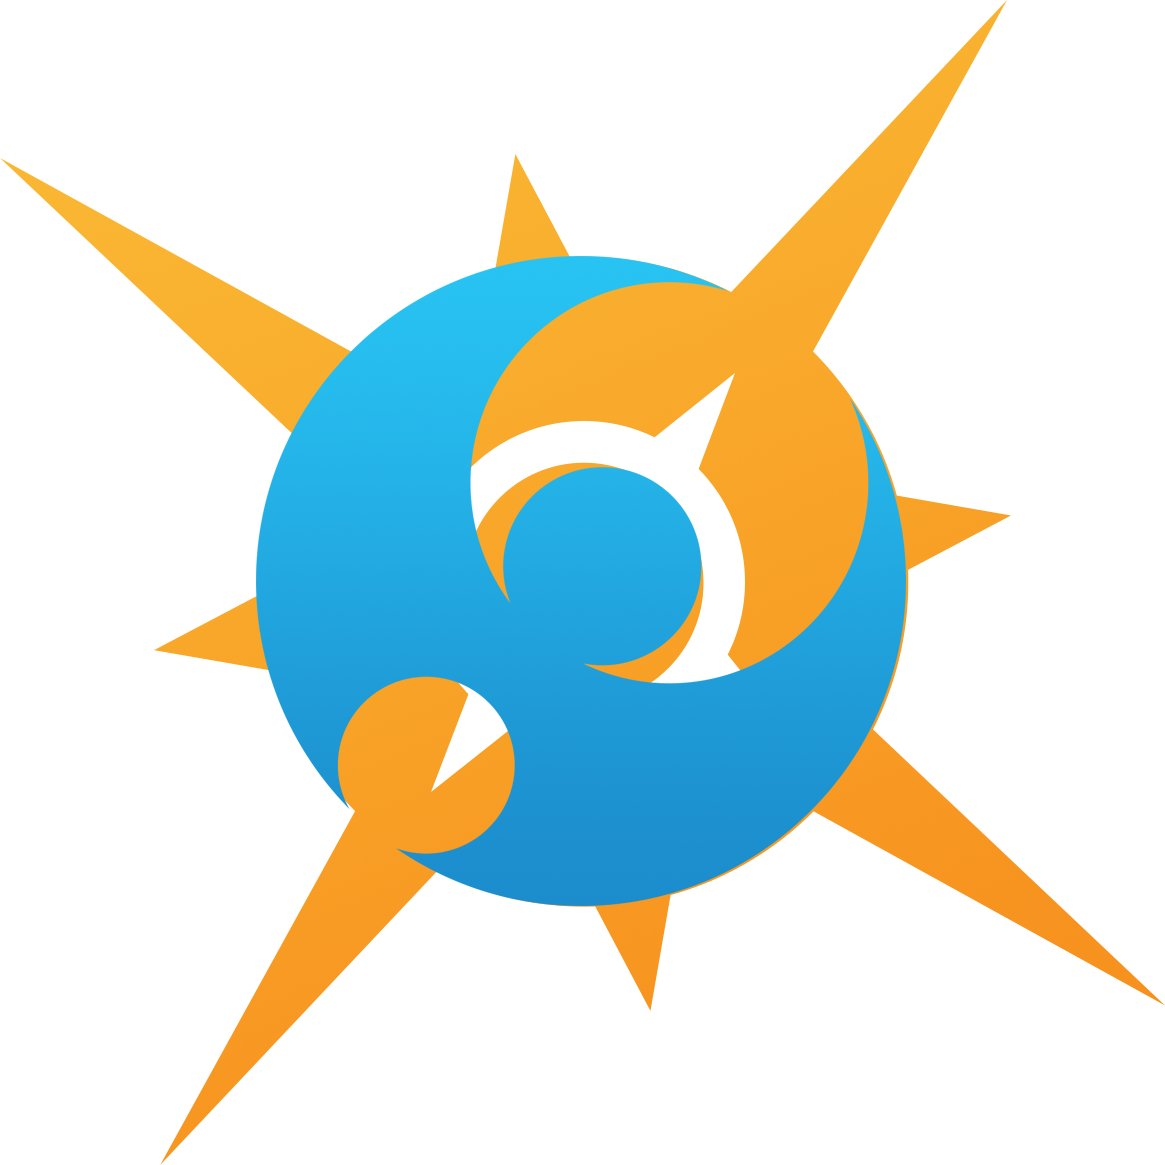 Pokemon Eclipse Symbol Images